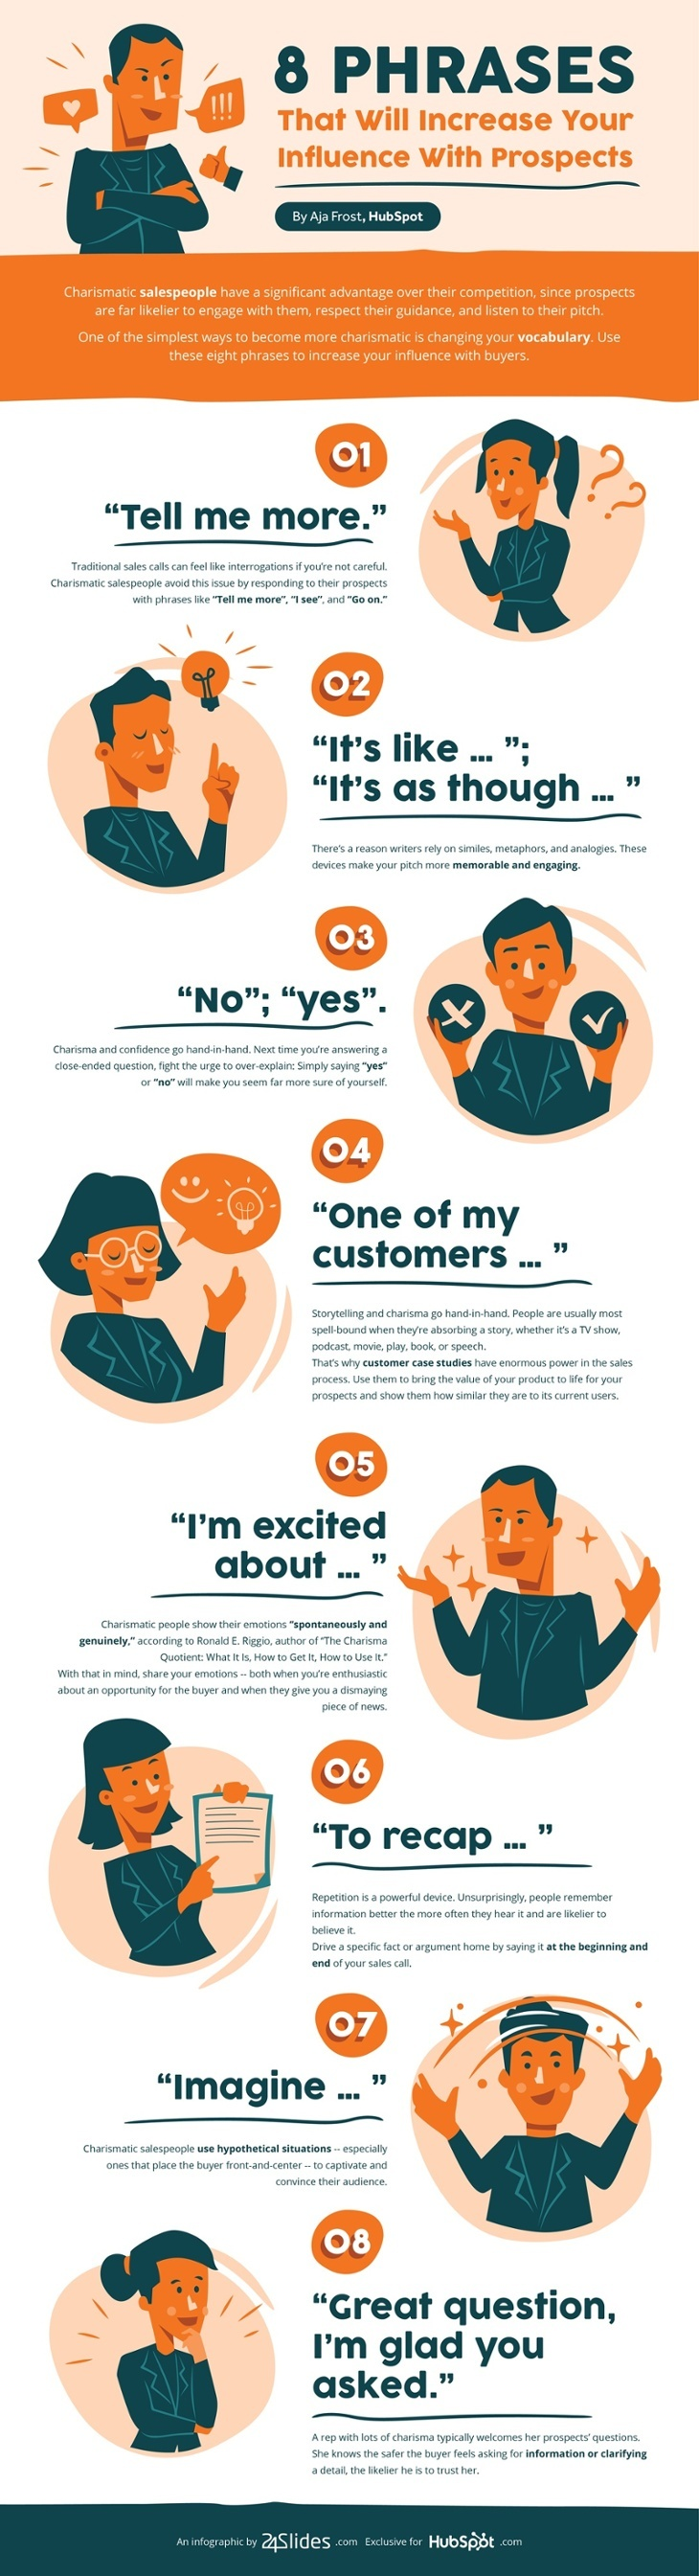 Want Charisma-This Infographic Shares Eight Ways to Develop Yours -Infographic.jpg